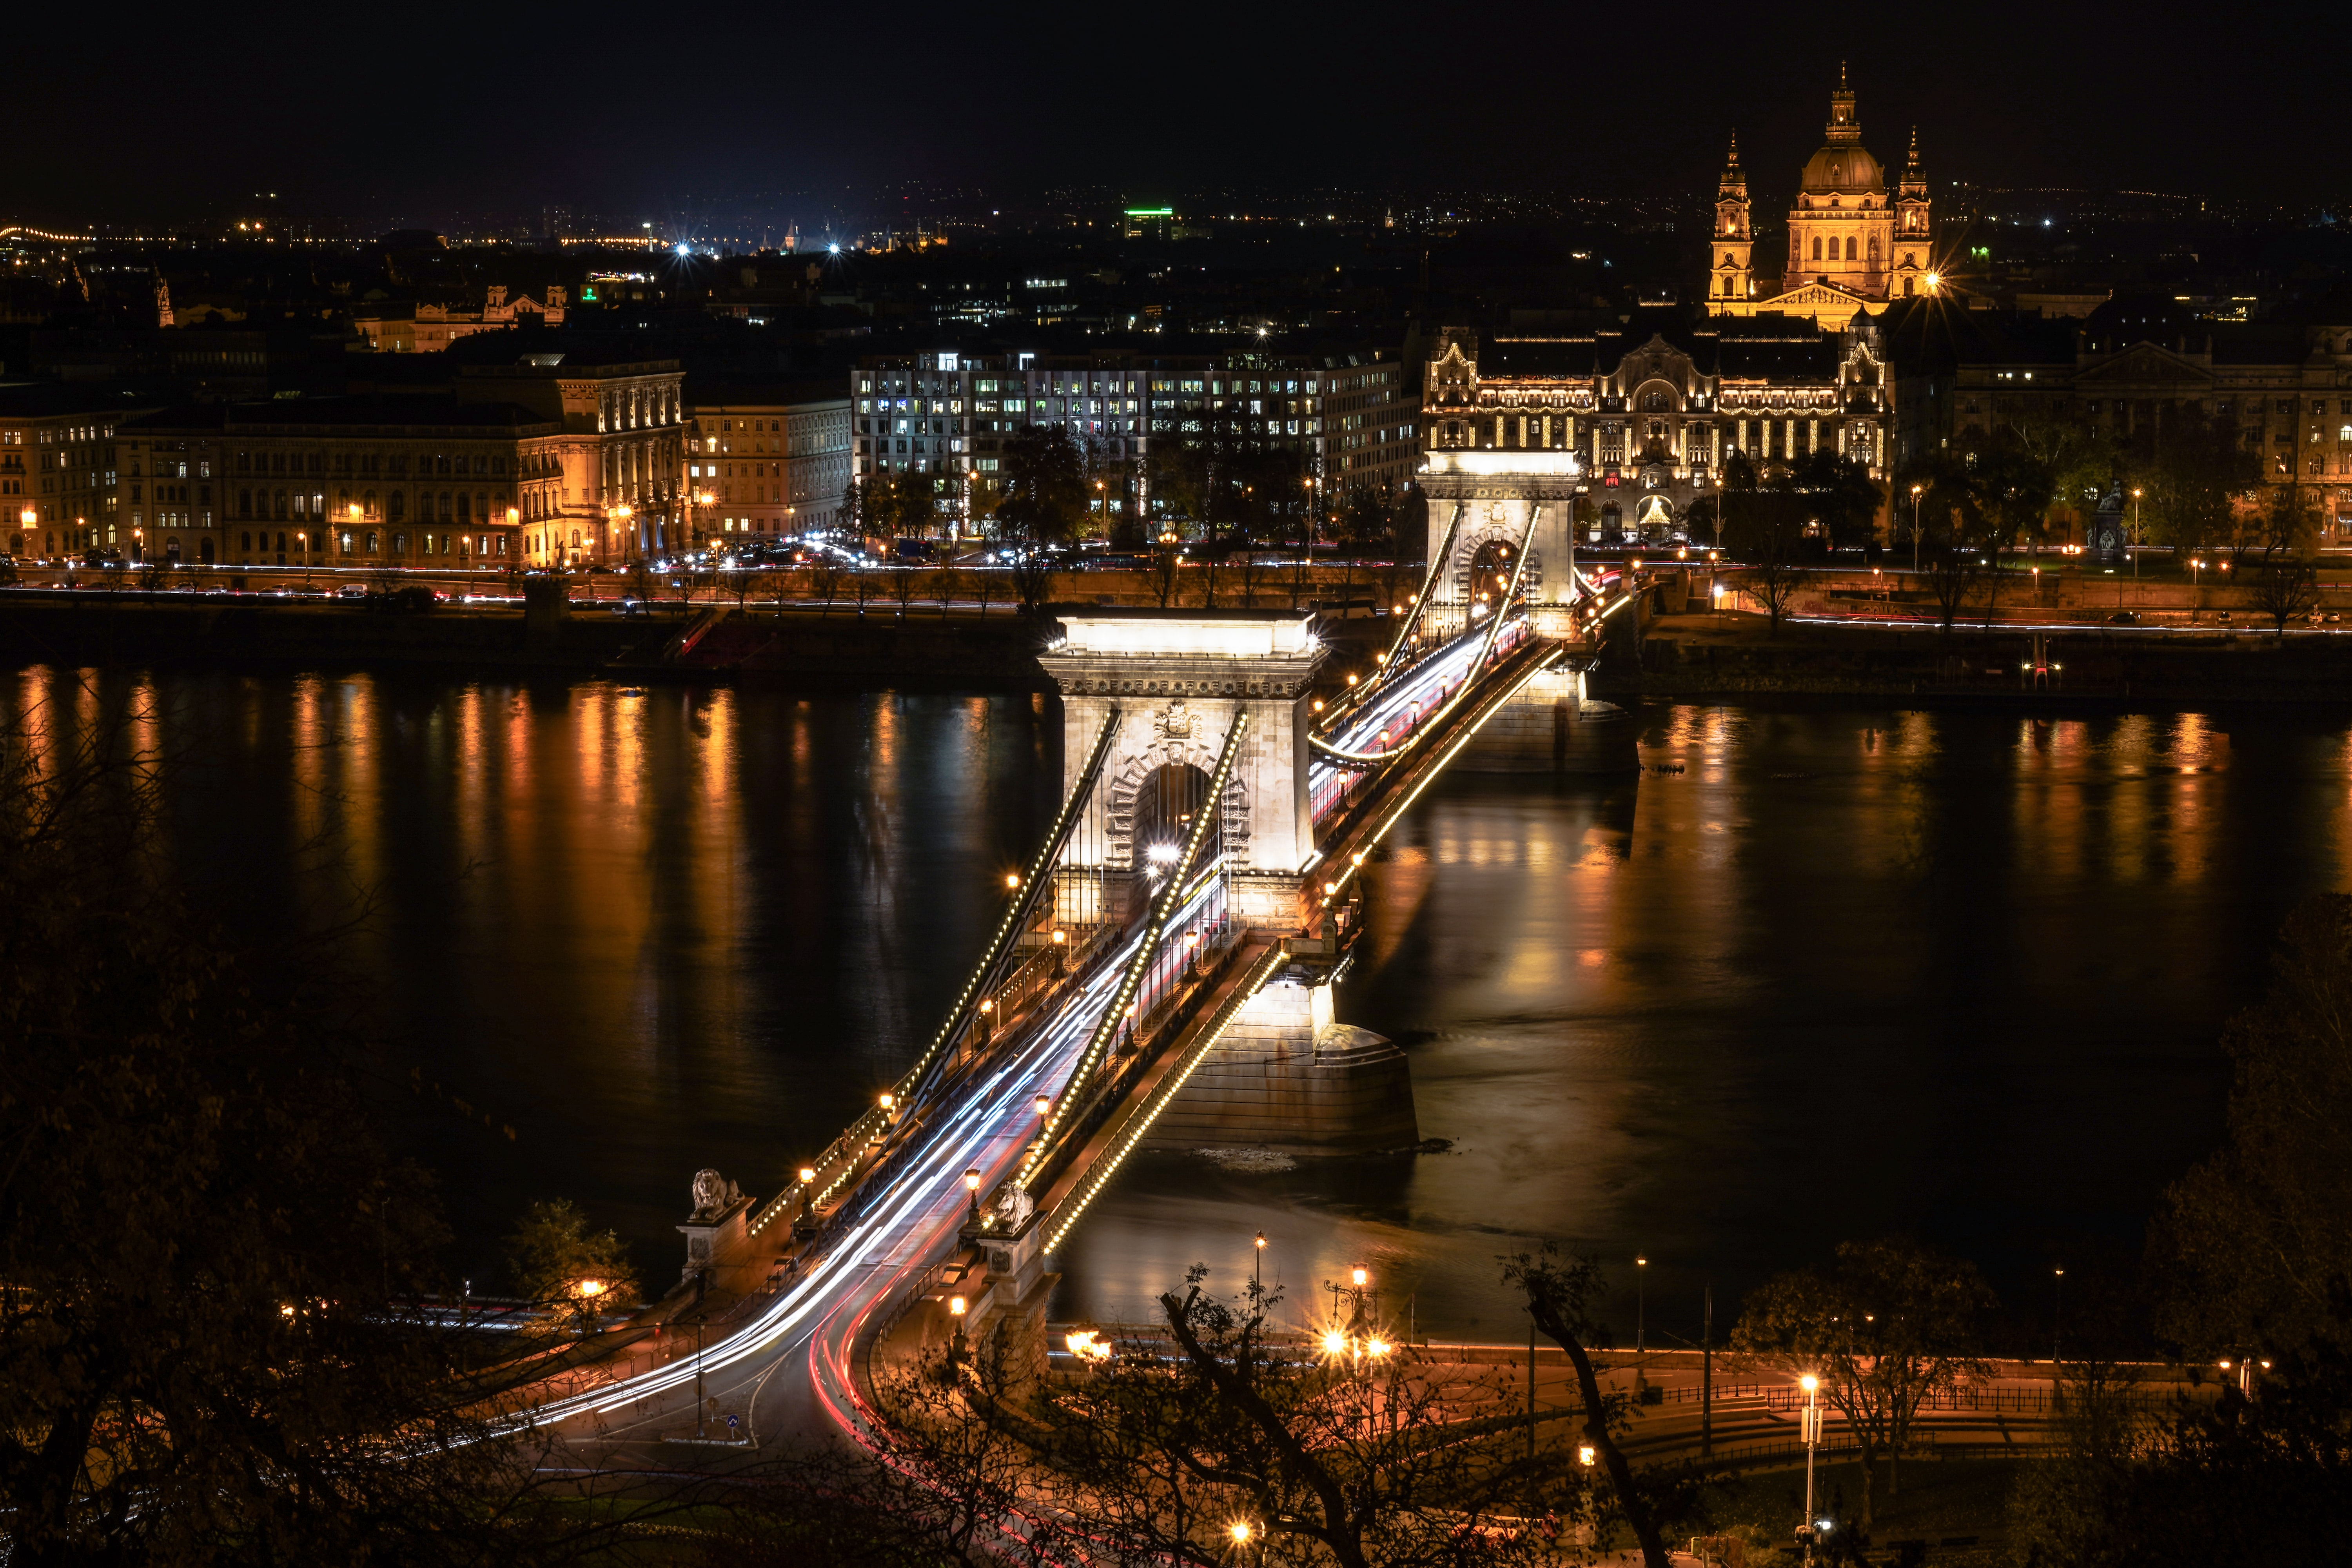 time lapse photography of bridge during night time